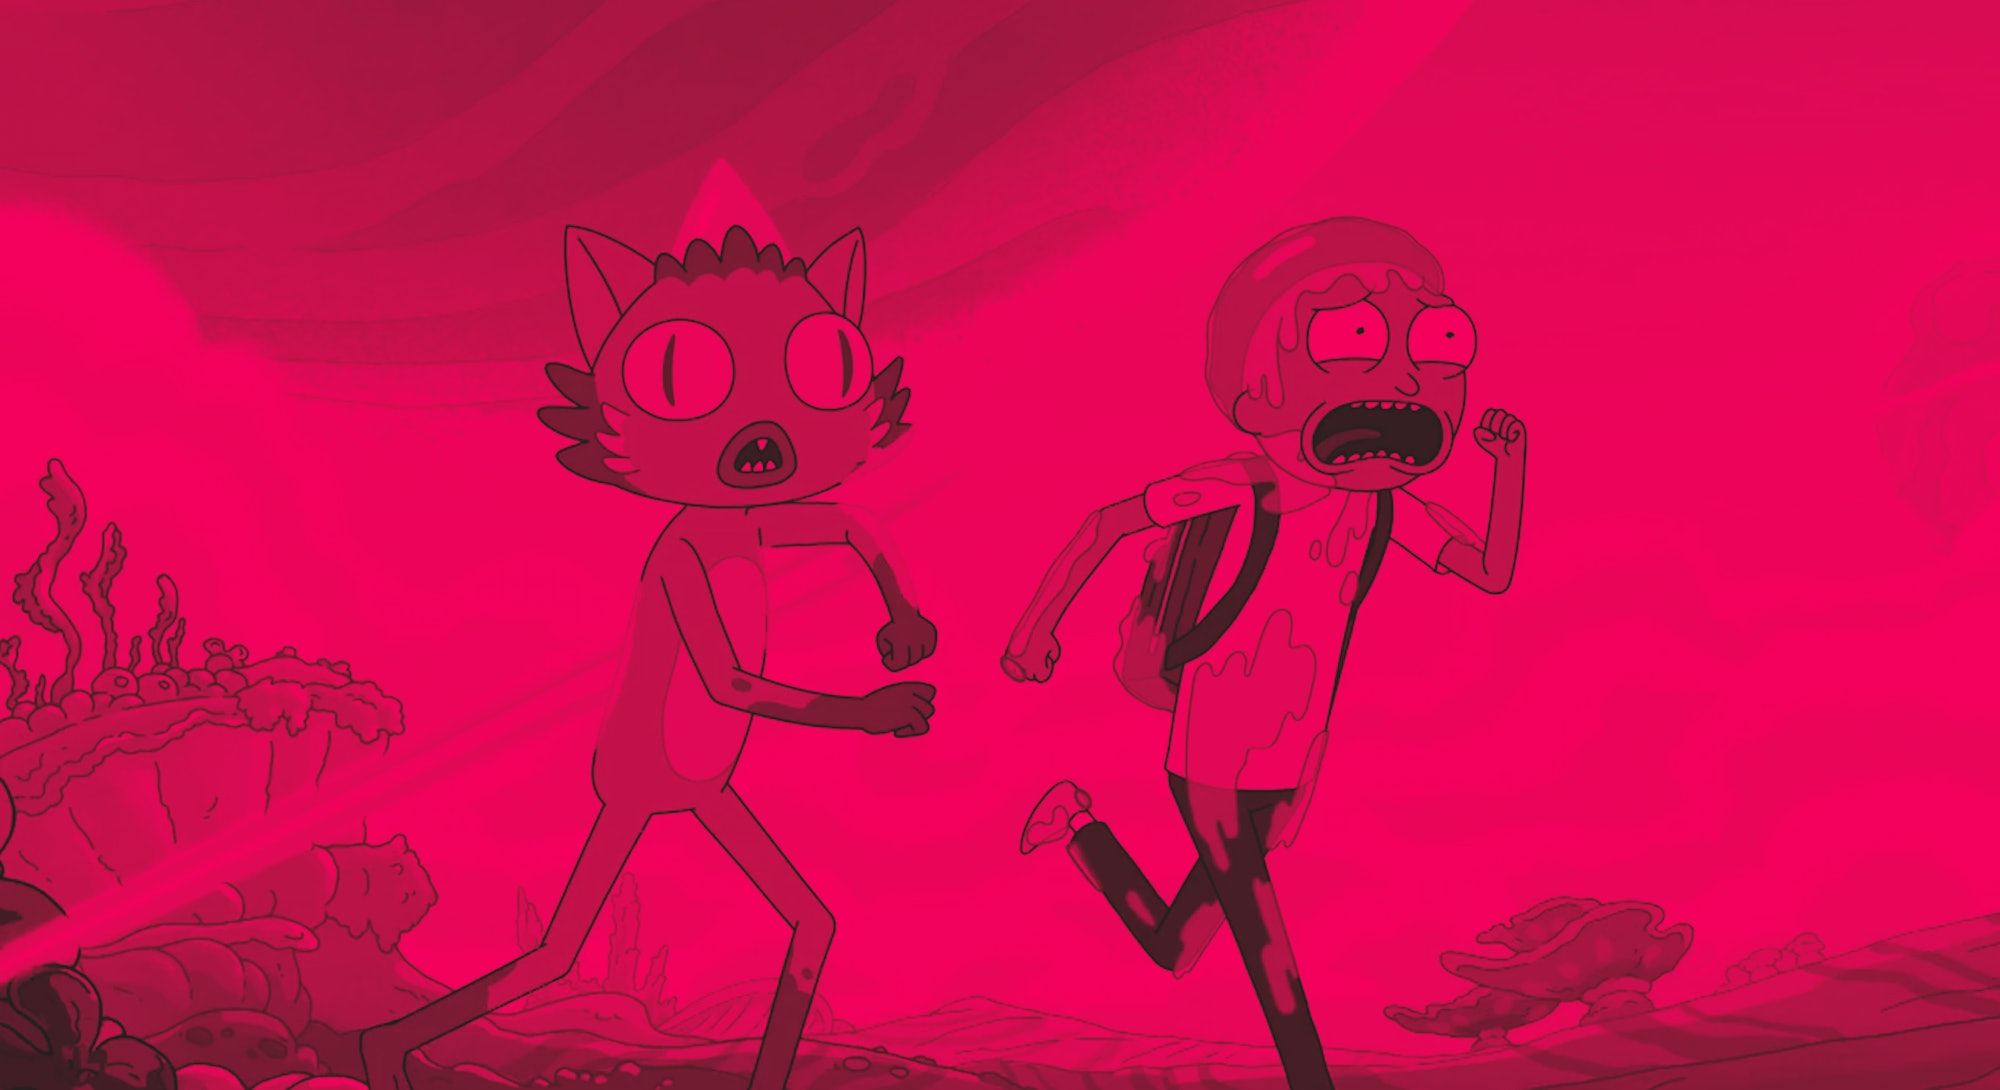 Morty runs with Chachi in Season 4